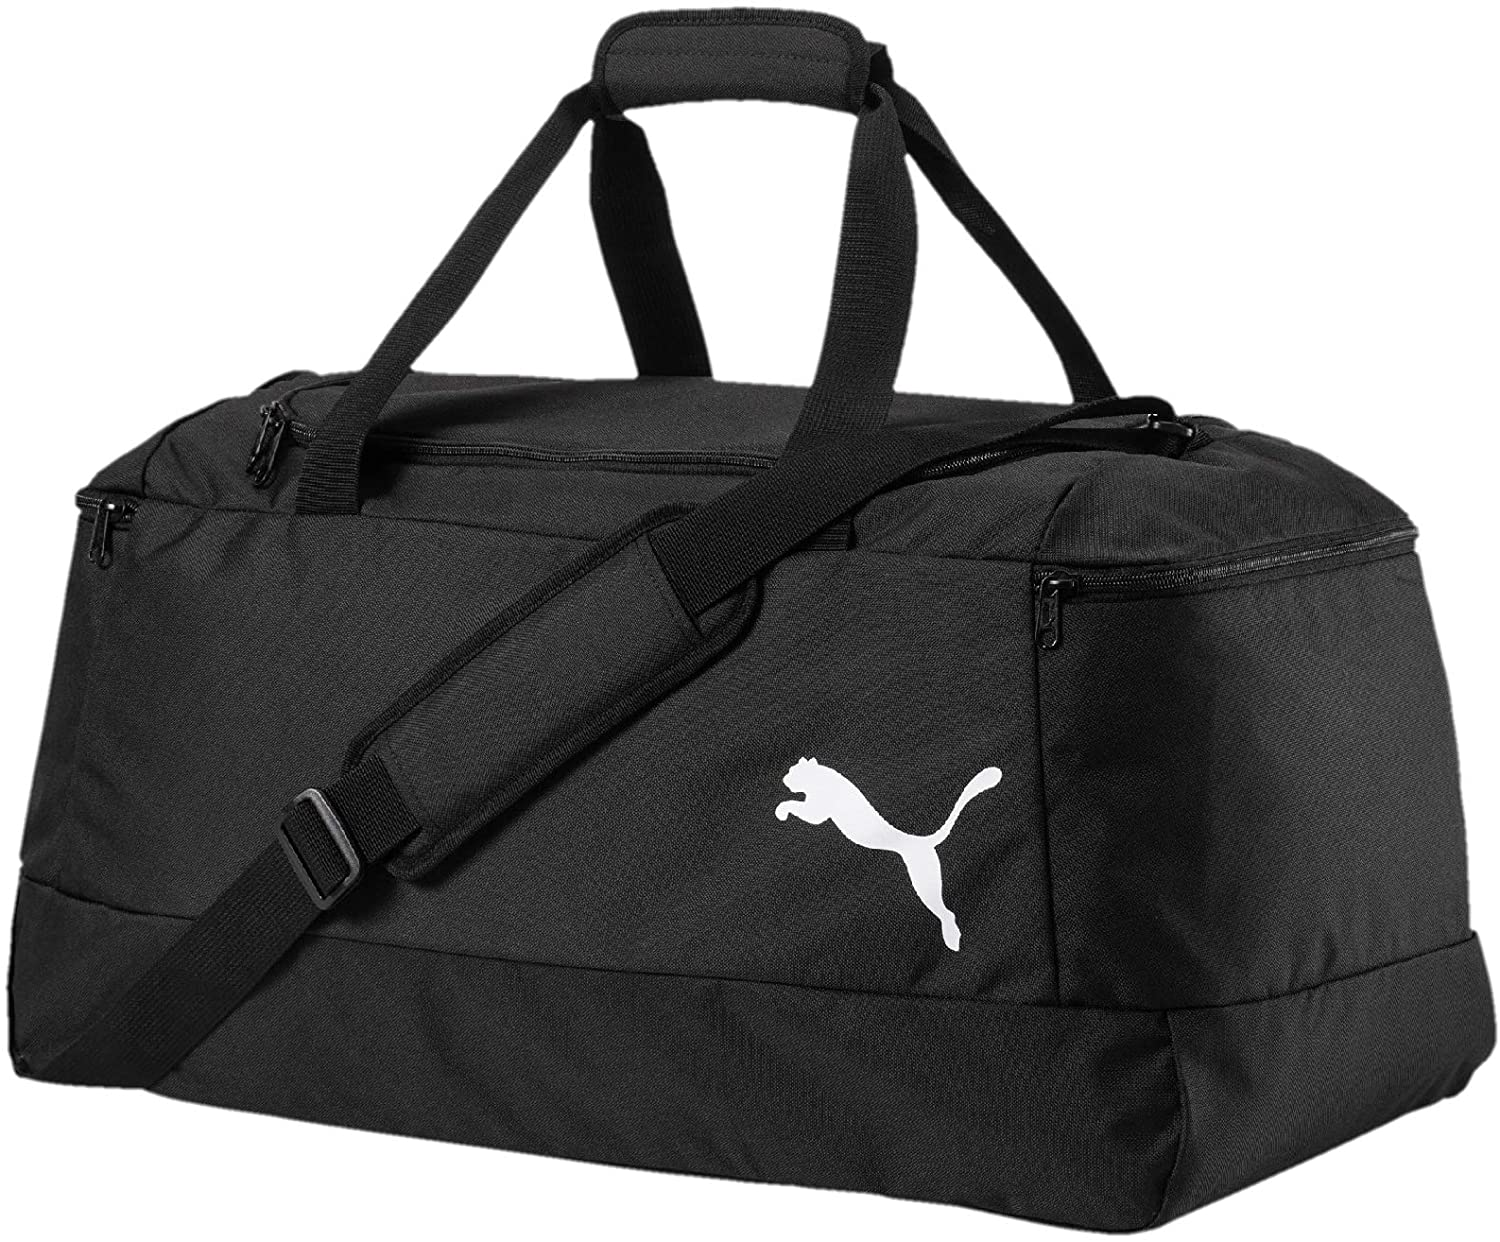 Sporttasche Puma amazon